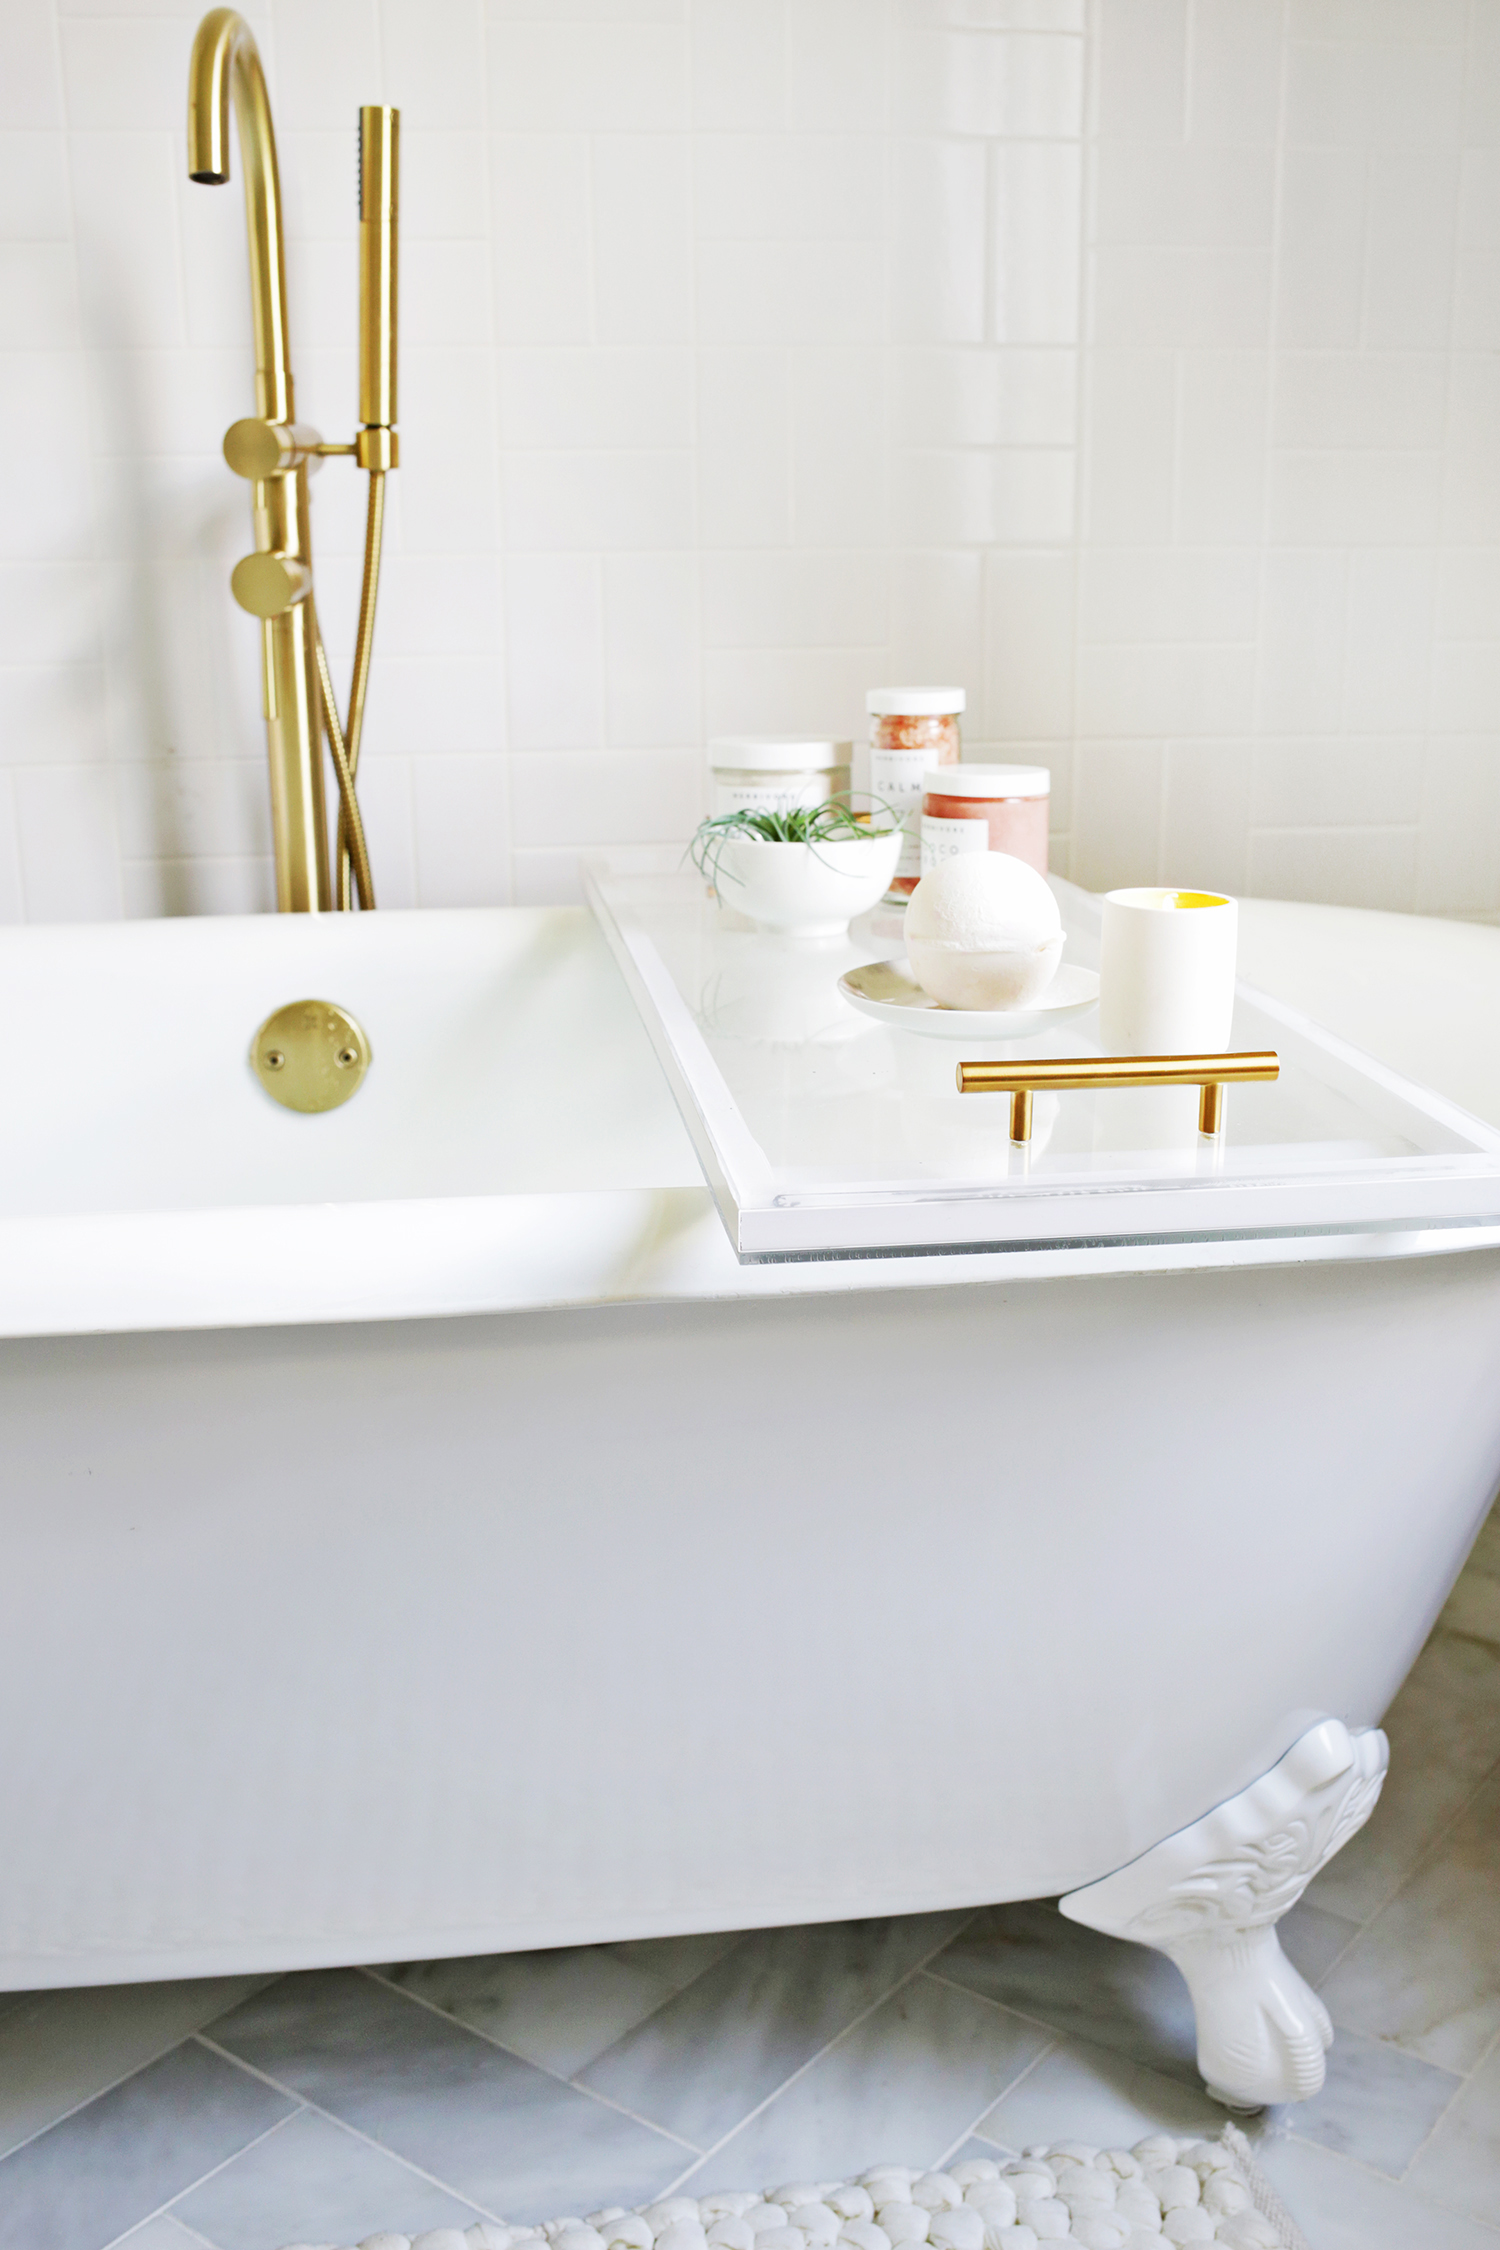 bathtub uk product accessories victoria caddy bath tray rack gallery bathroom tombolo en albert